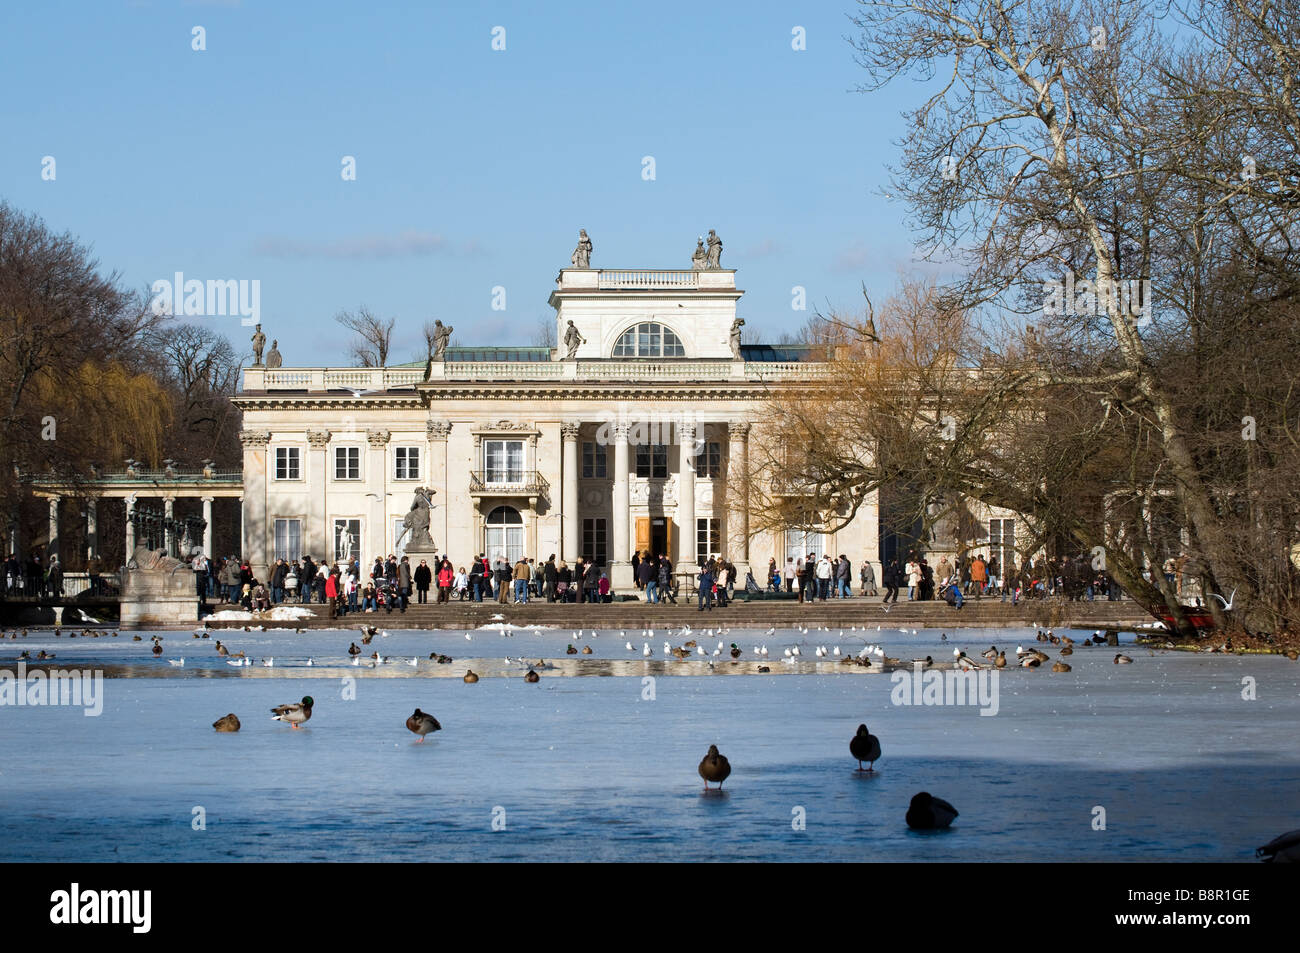 Palace On The Isle In The Royal Park Of Lazienki In Winter